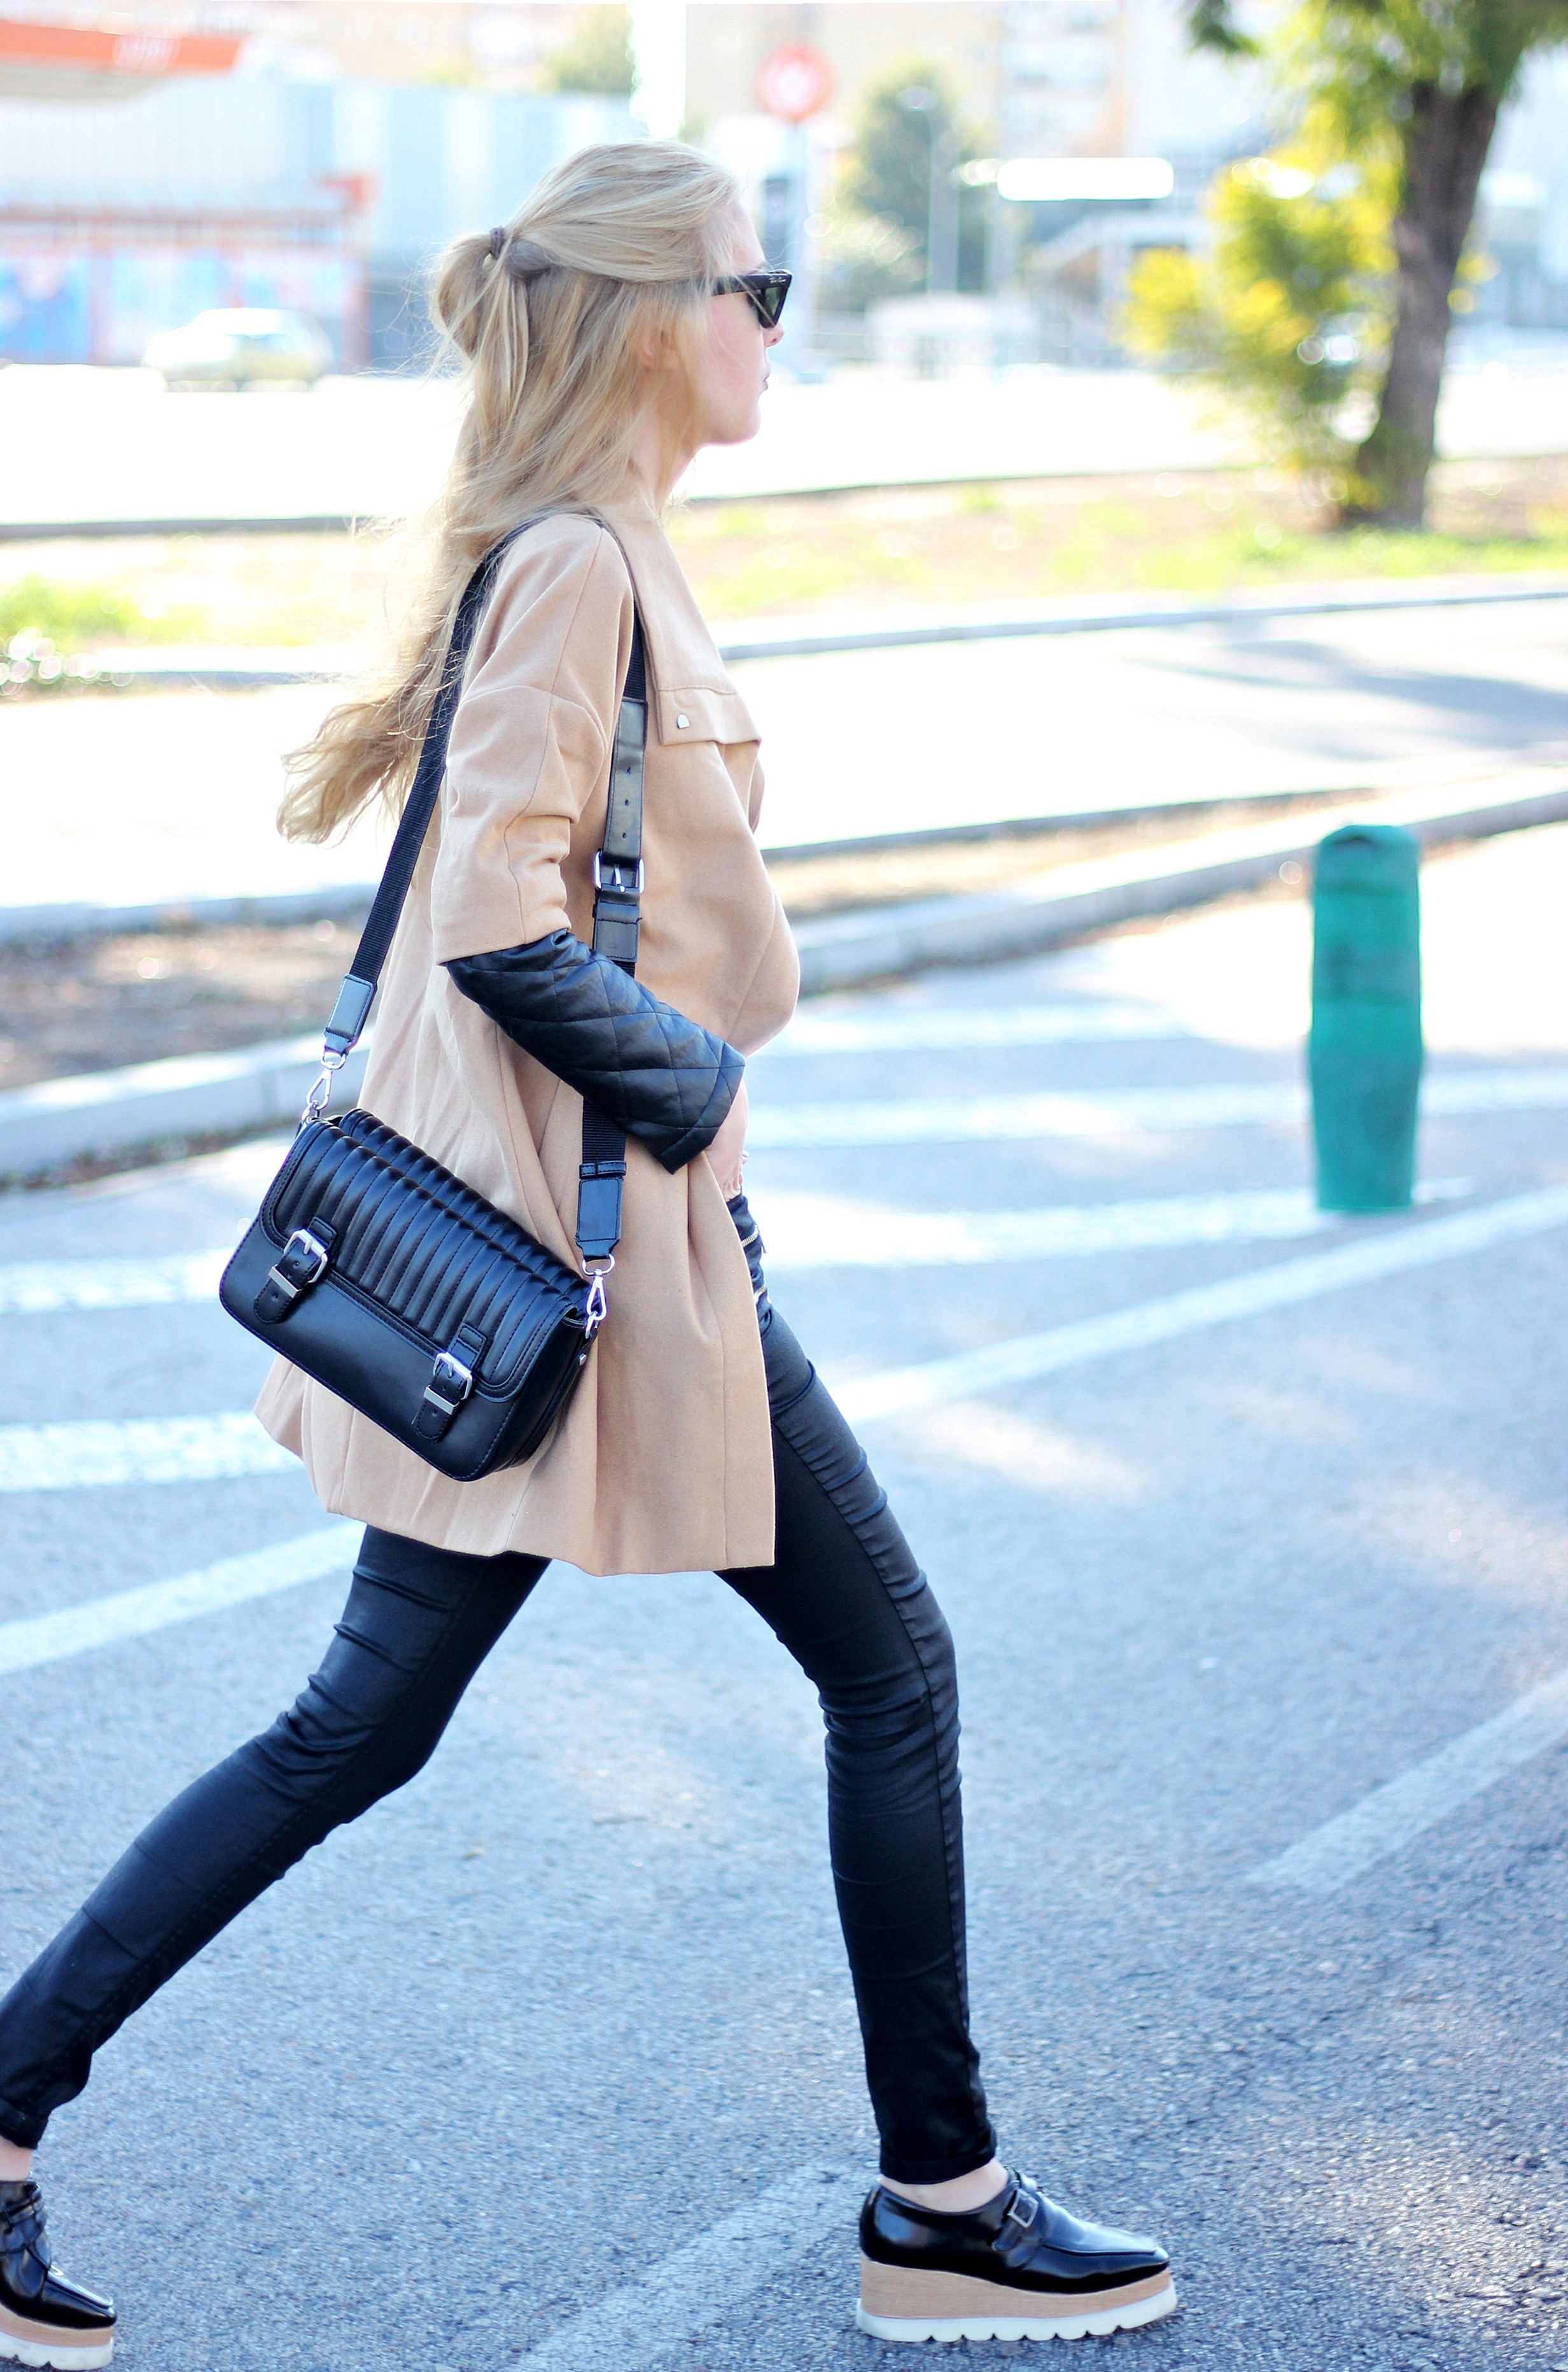 Marta Martin is showing the black and camel trend with a Style moi coat and leather trousers